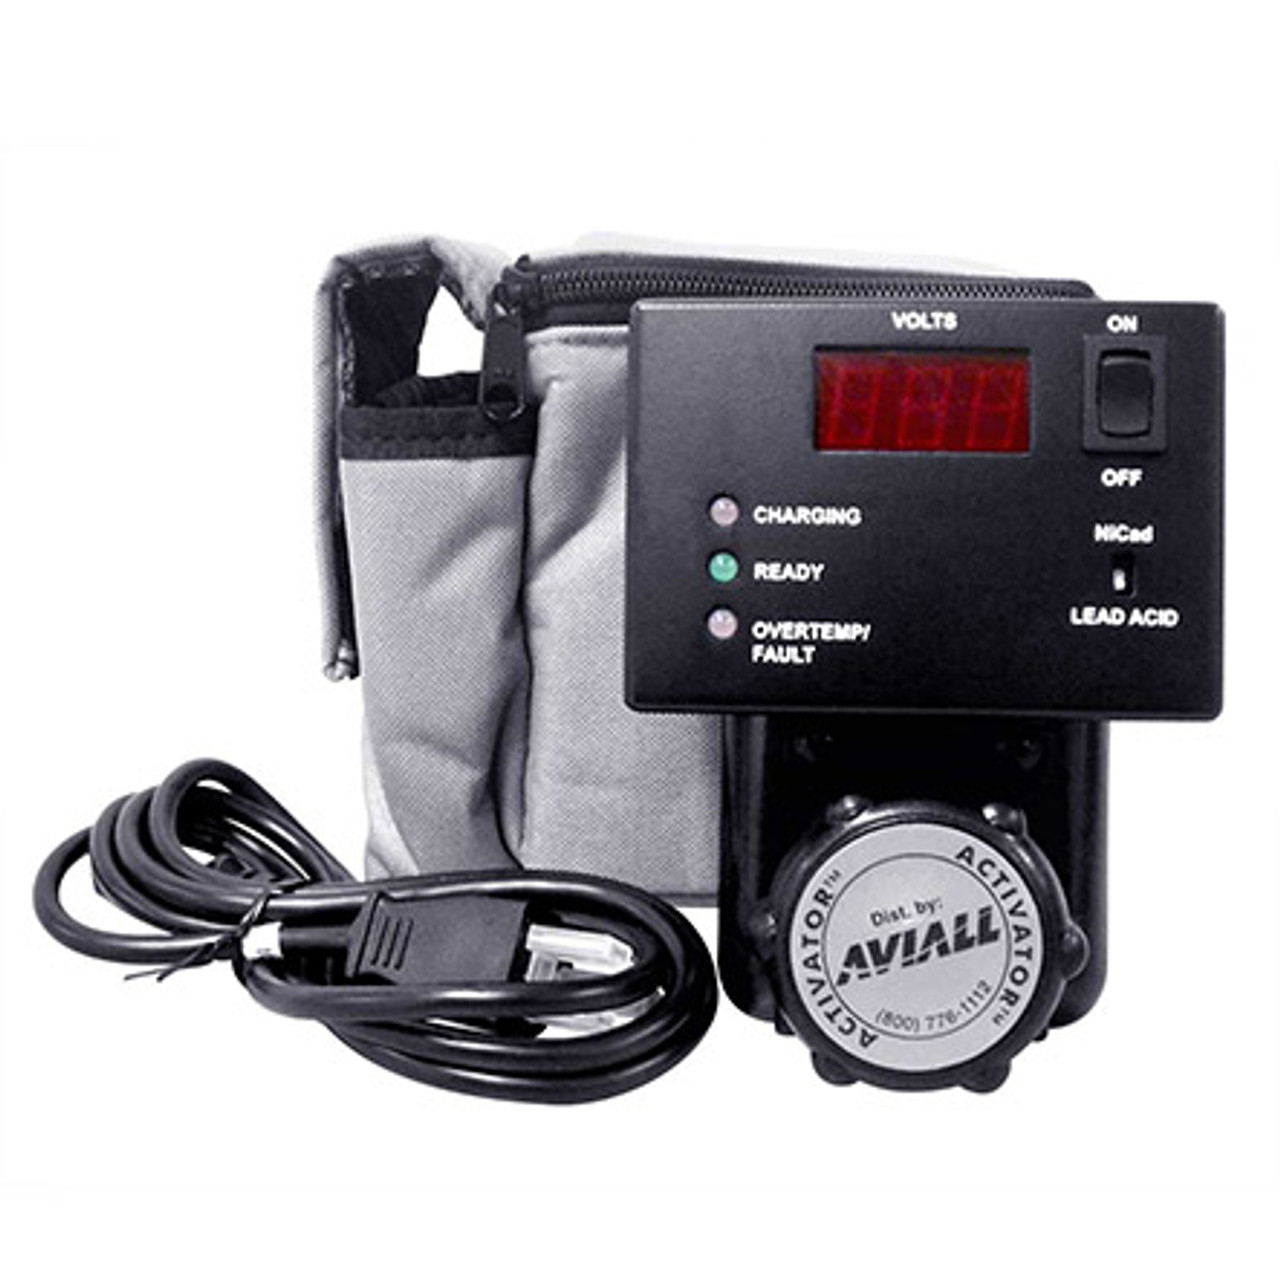 "Power Products Activator 282™ Battery Charger, 24 V / Lamar Technologies Llc / Part # 282  The Activator 282 is a direct connect, fully automatic 2 amp charger capable of charging a 24 volt military or aviation battery of any rating from zero to full capacity. It is also a standby maintenance unit without the use of ""trickle"" charging, thus extending the life and durability of the battery. The digital voltmeter continuously displays battery voltage during charge and standby."